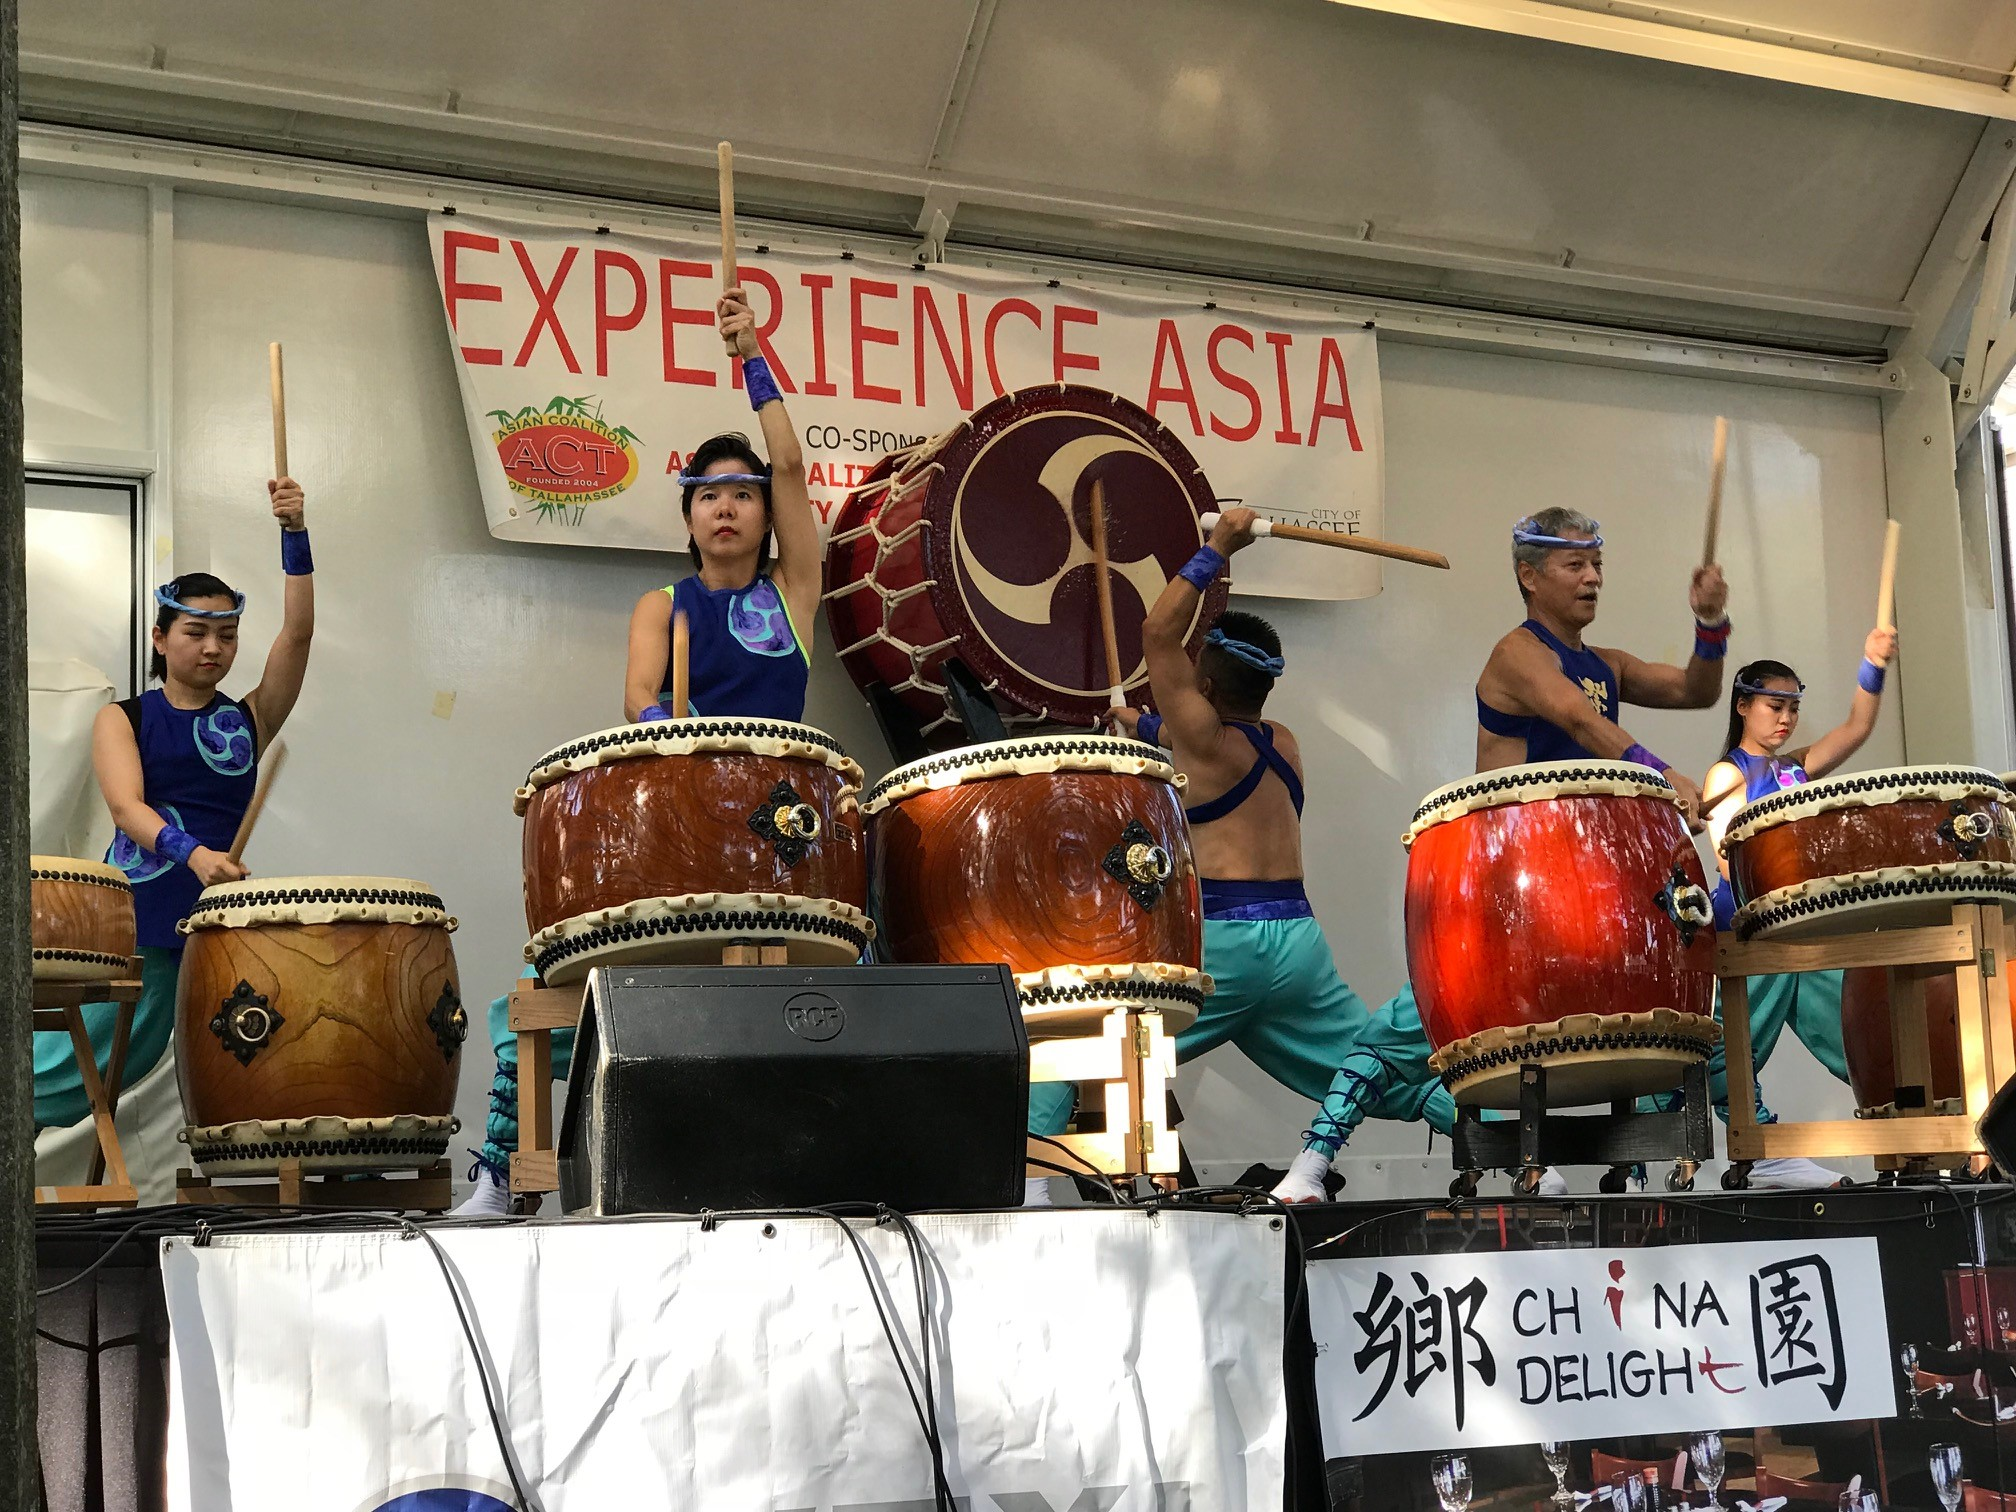 EPCOT's Matsuriza Taiko Drummers perform at the Experience Asia Festival.